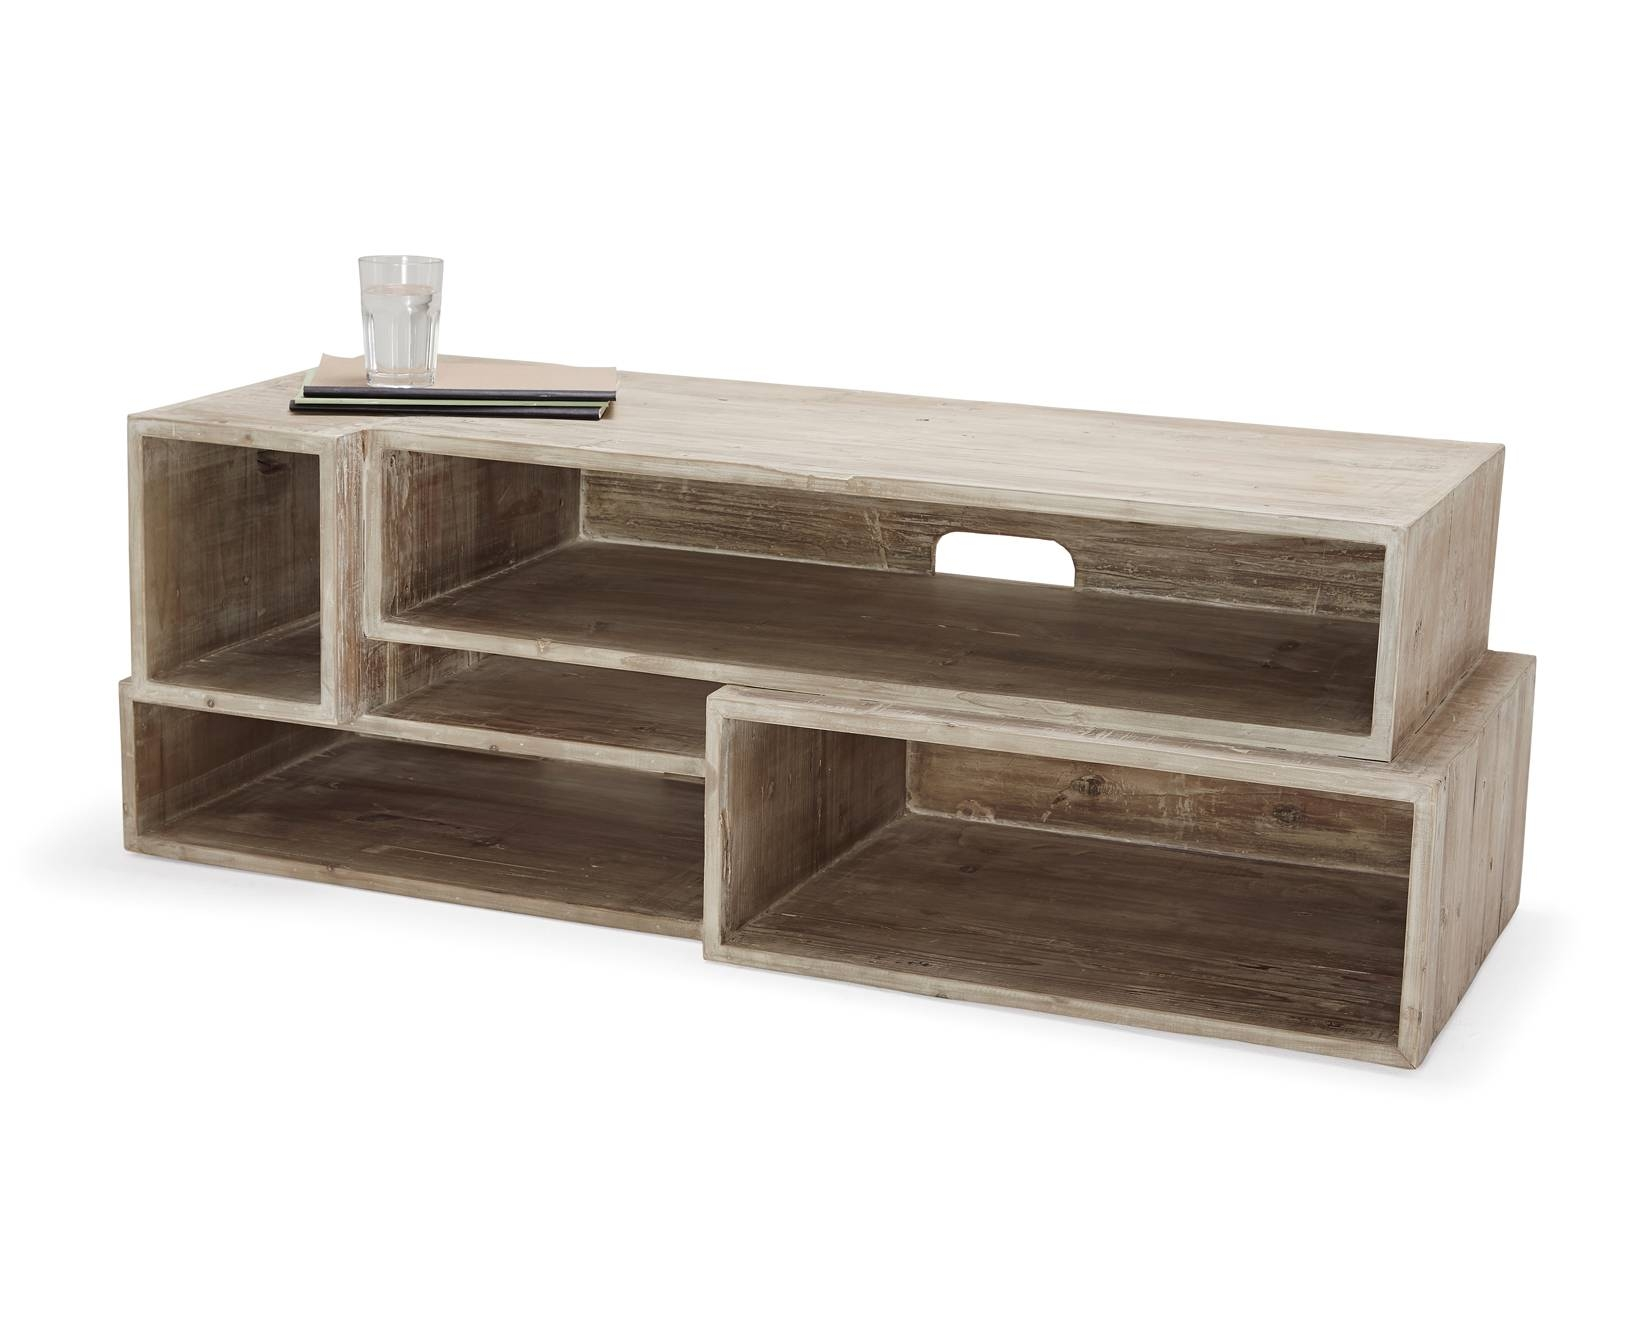 Goggle Mate Tv Stand | Crate Style Tv Stand | Loaf Inside Cheap Wood Tv Stands (View 6 of 15)